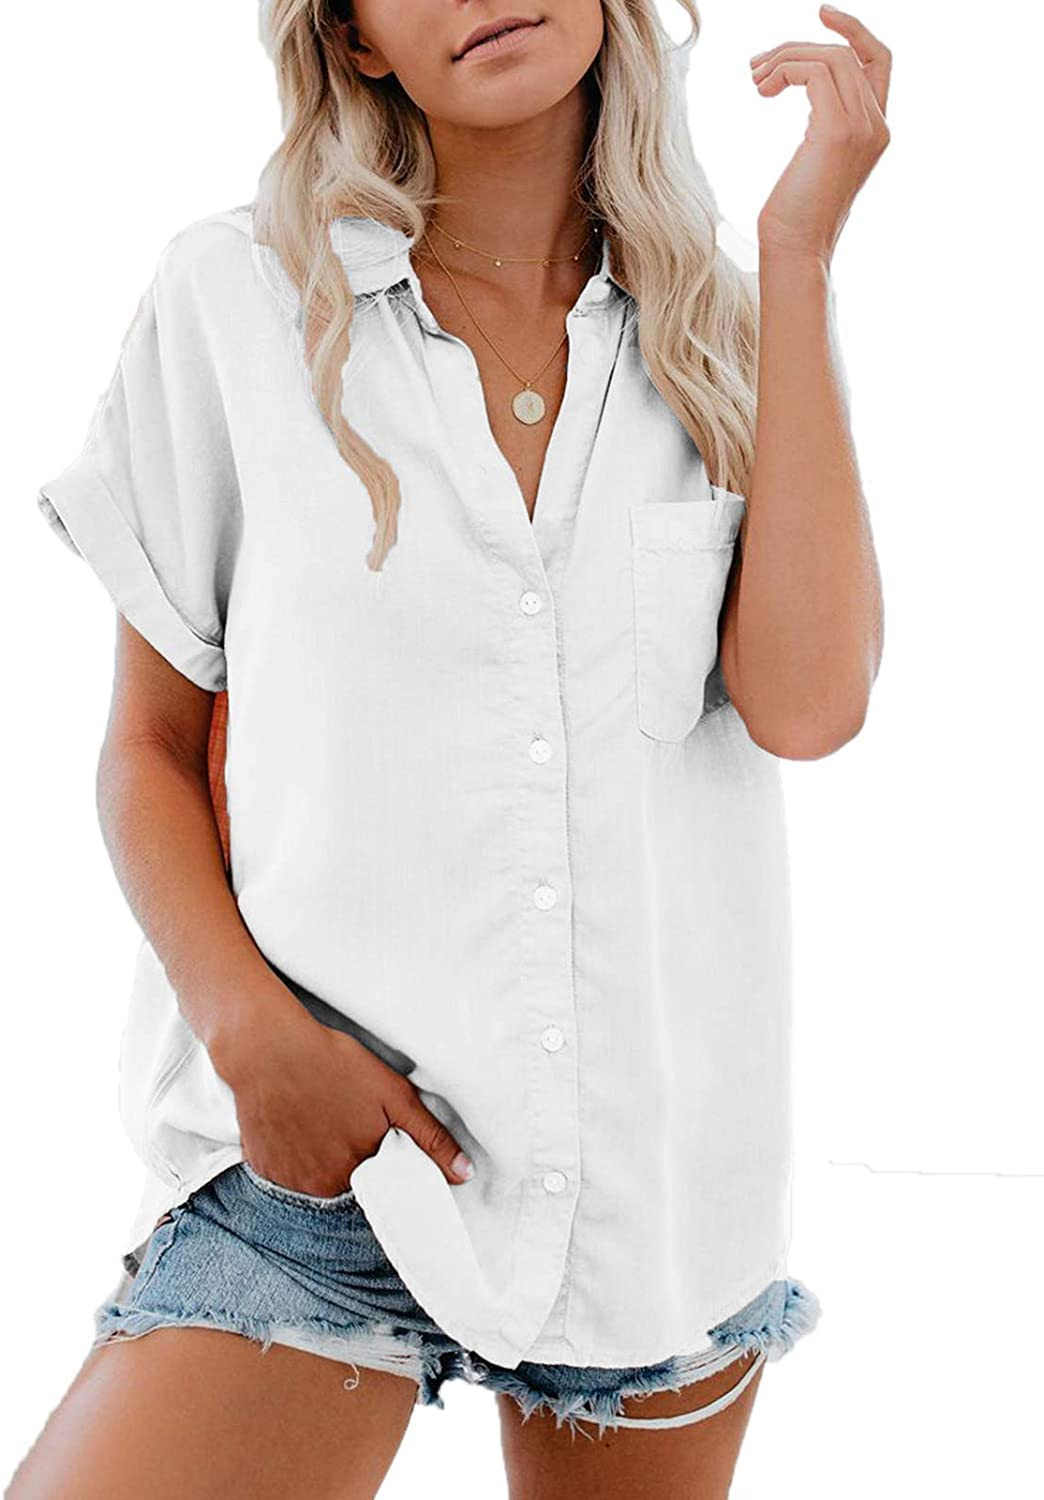 Bellastory Women's Button Up Shirts Cotton Short Sleeve Blouses V Neck Casual Tunics Solid Color Tops with Pockets